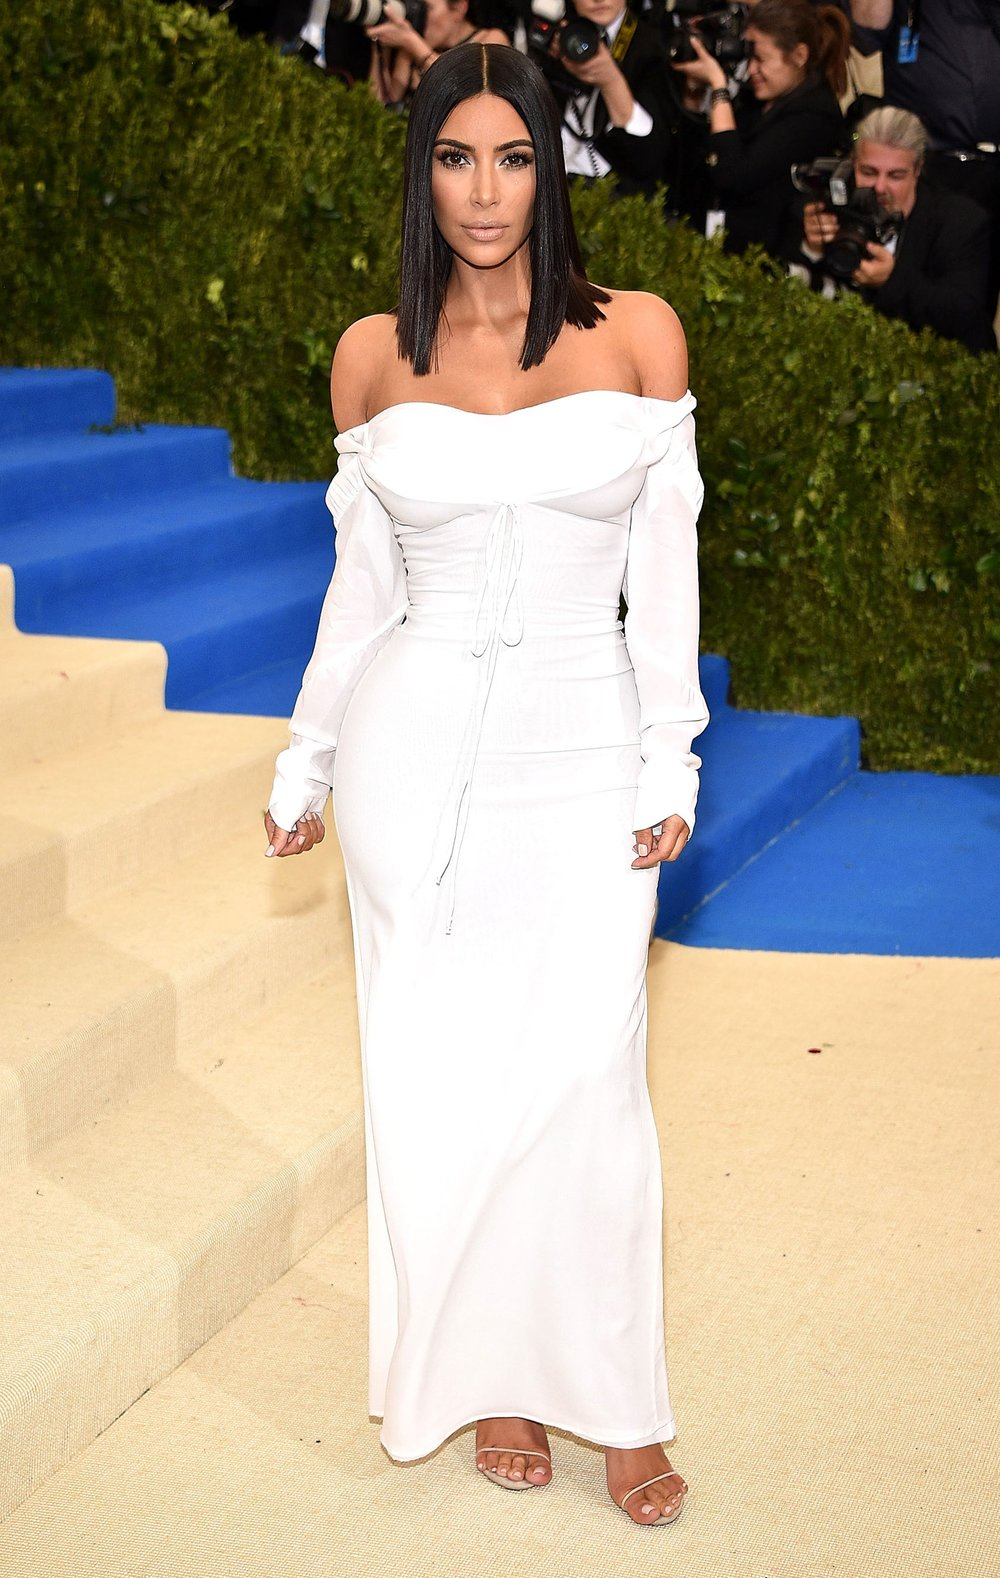 KKW   in Vivienne Westwood Couture Collection . Simple. Elegant. Sexy. So chic. Can't hate on her here.